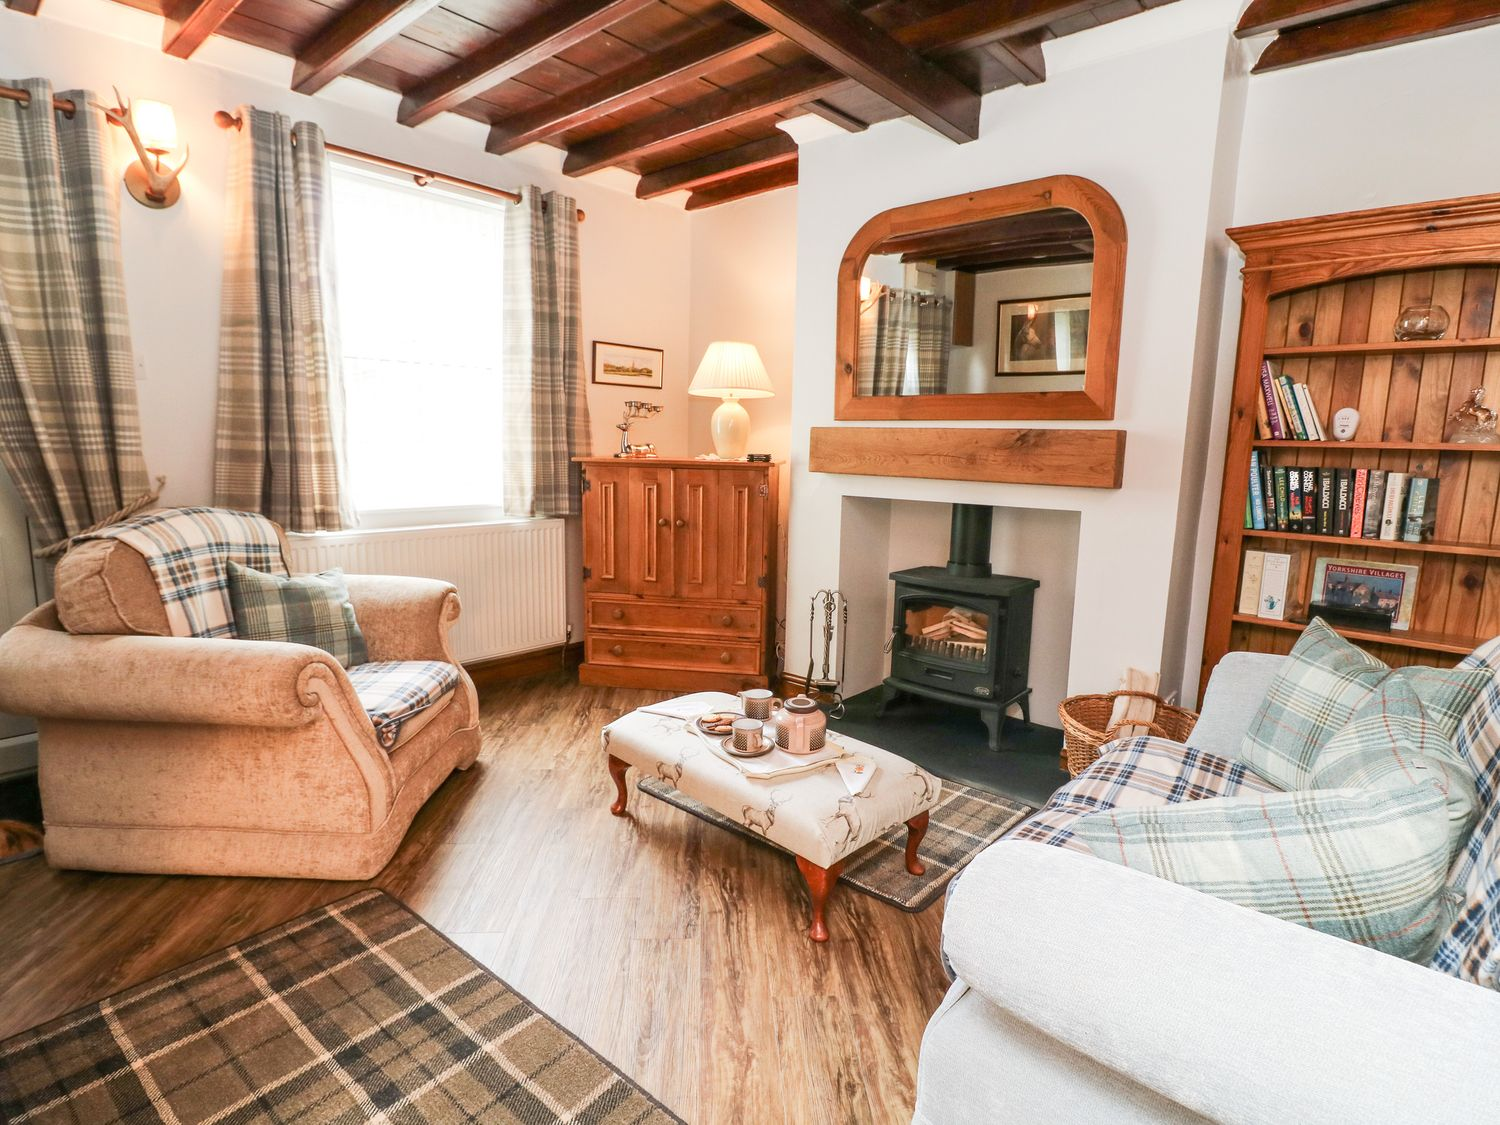 Horseshoe Cottage in South Cave - sleeps 3 people